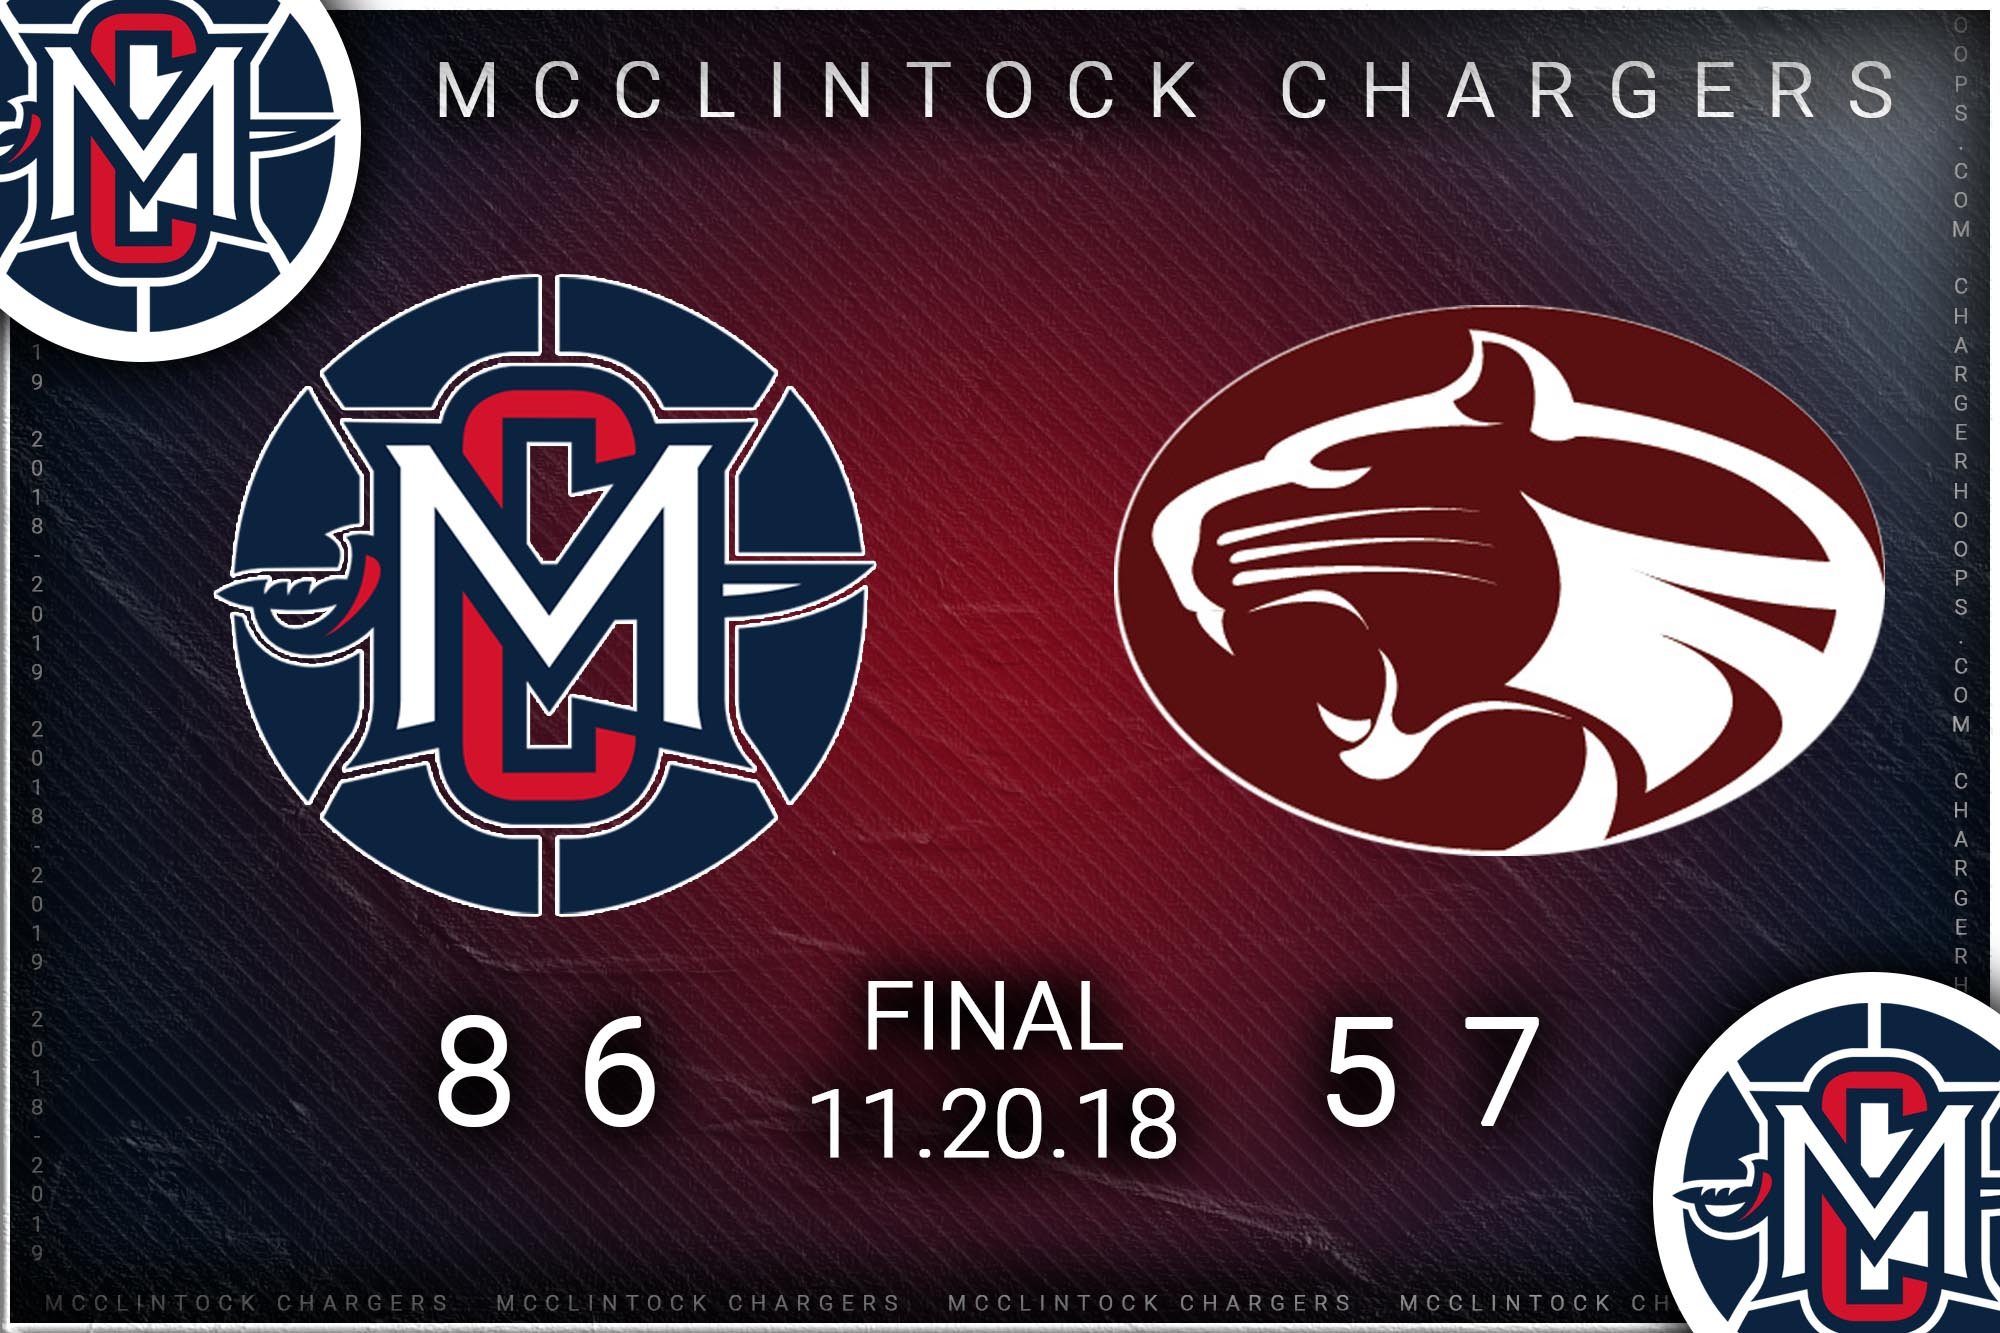 McClintock vs Mtn. Ridge